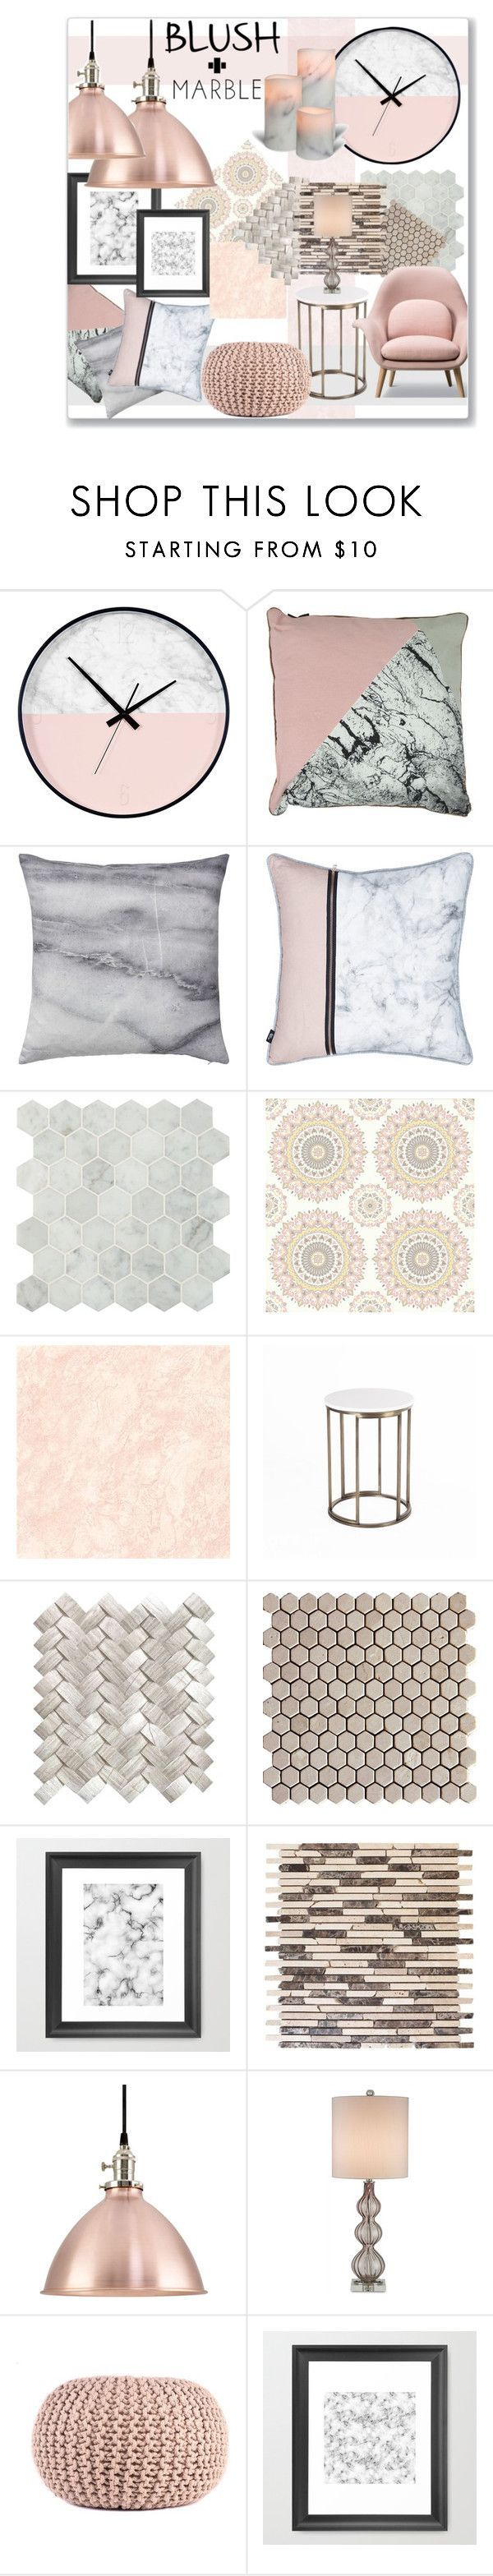 Home decor collage from january 2017 featuring currey company -  Soft And Sleek By Jckallan On Polyvore Featuring Interior Interiors Interior Design